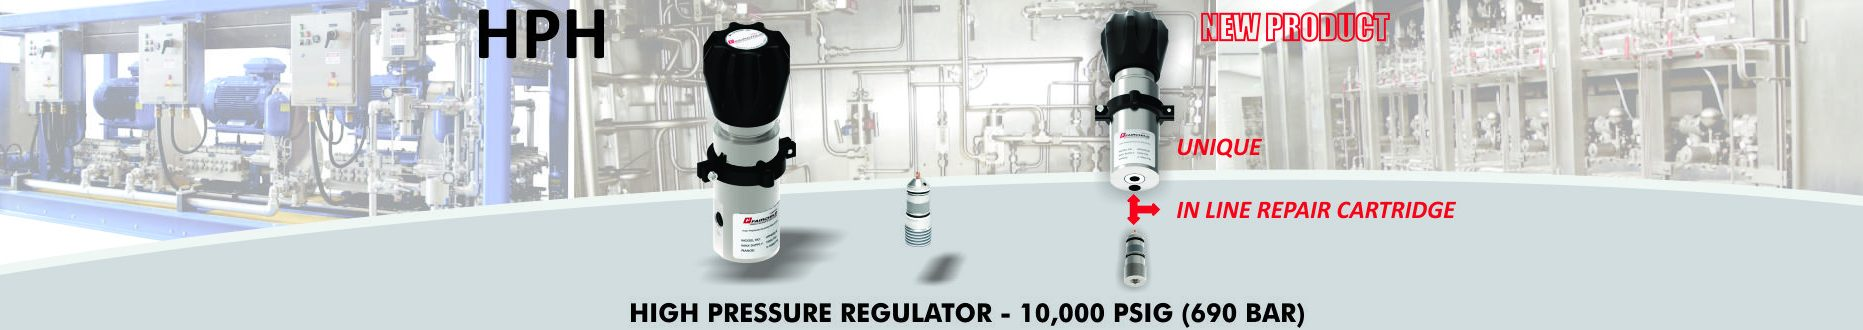 High Pressure Regulator (Hydraulic and Gases) - 10000 PSIG (690 Bar)